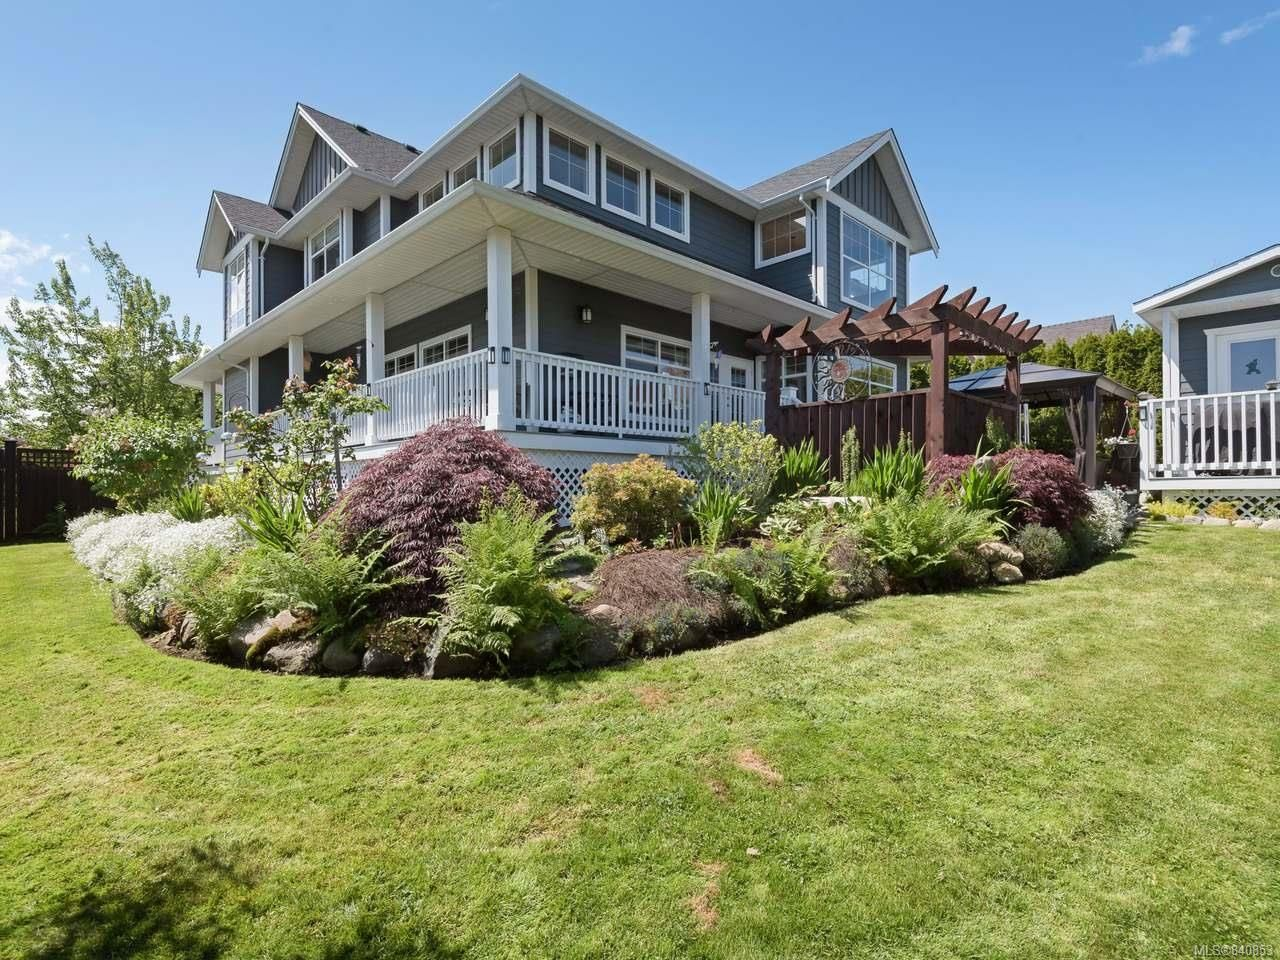 Photo 4: Photos: 206 Marie Pl in CAMPBELL RIVER: CR Willow Point House for sale (Campbell River)  : MLS®# 840853